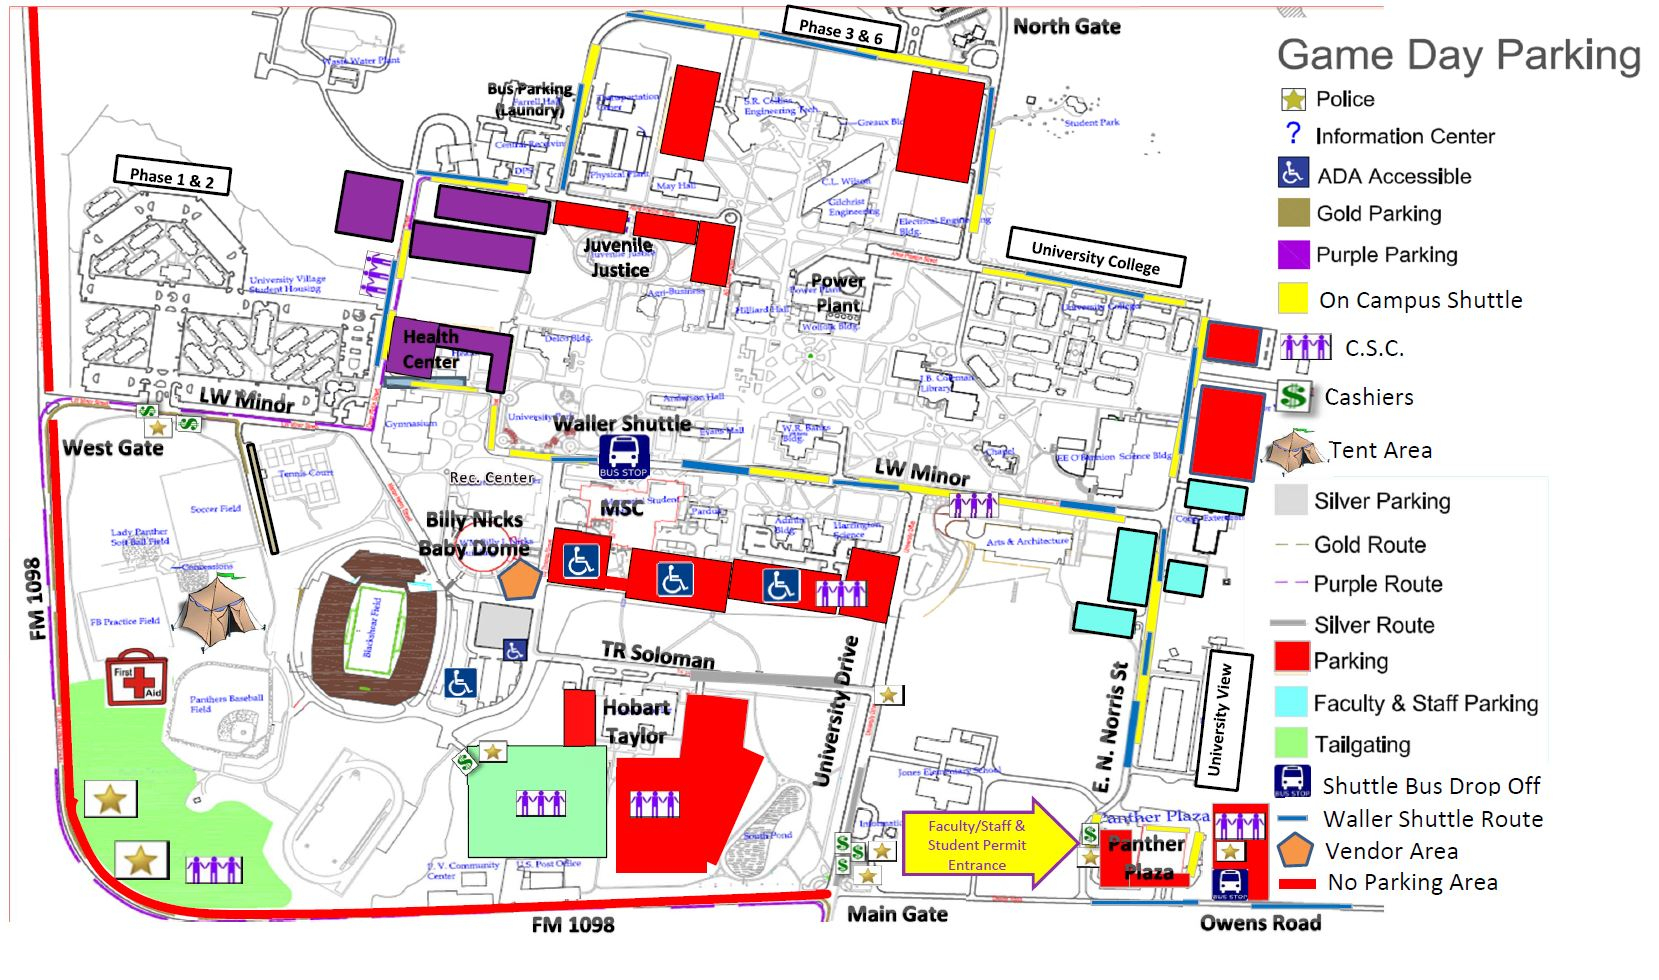 Special Events Parking - Auxiliary Services - University Of Texas Football Parking Map 2016